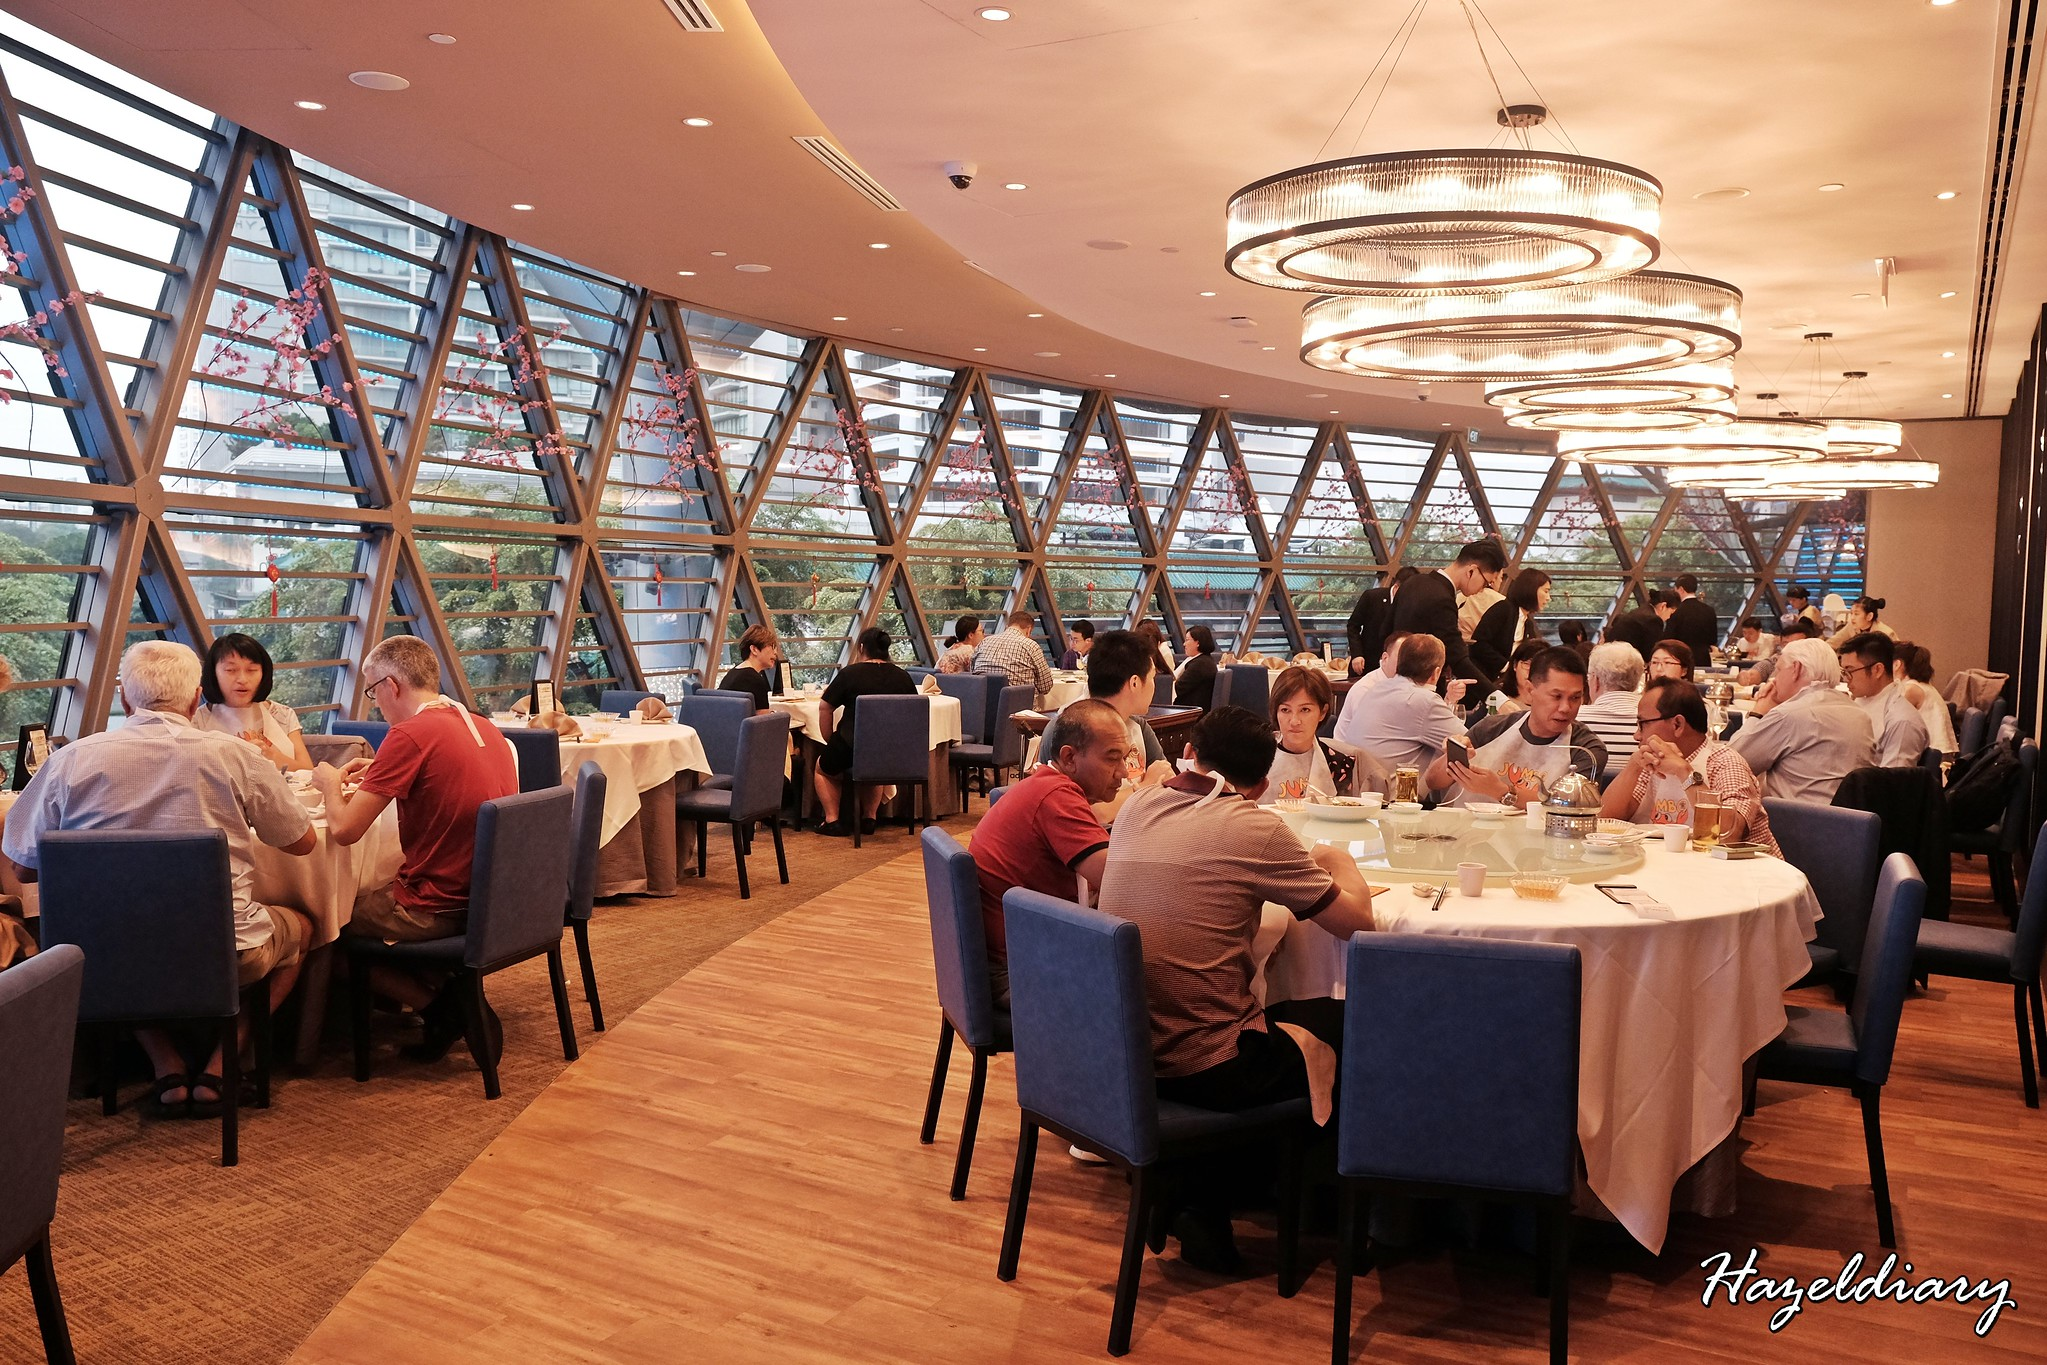 [SG EATS] Jumbo Seafood Restaurant At Ion Orchard